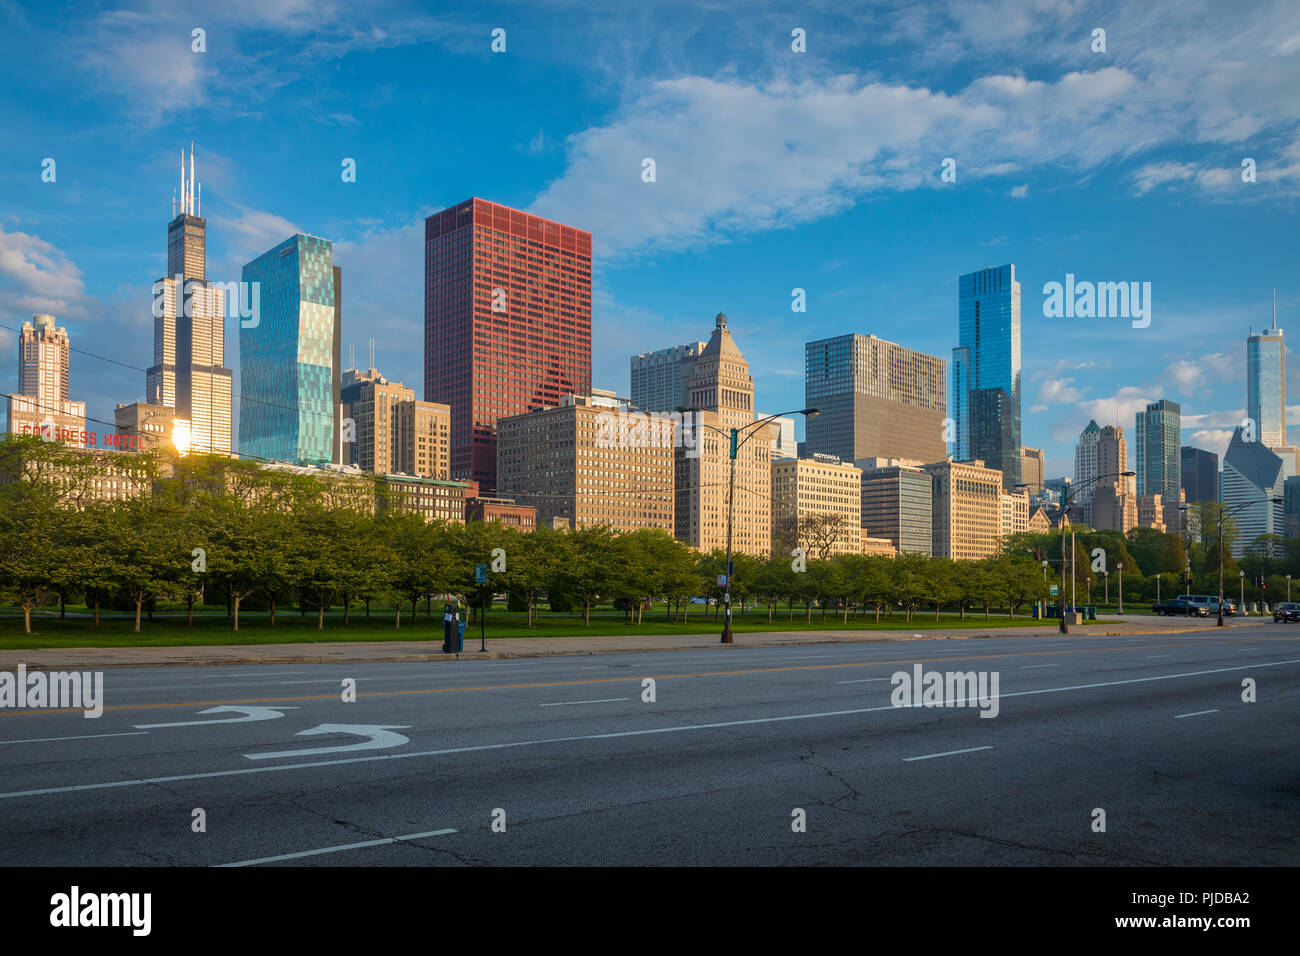 Chicago, a city in the U.S. state of Illinois, is the third most populous city in the United States. - Stock Image